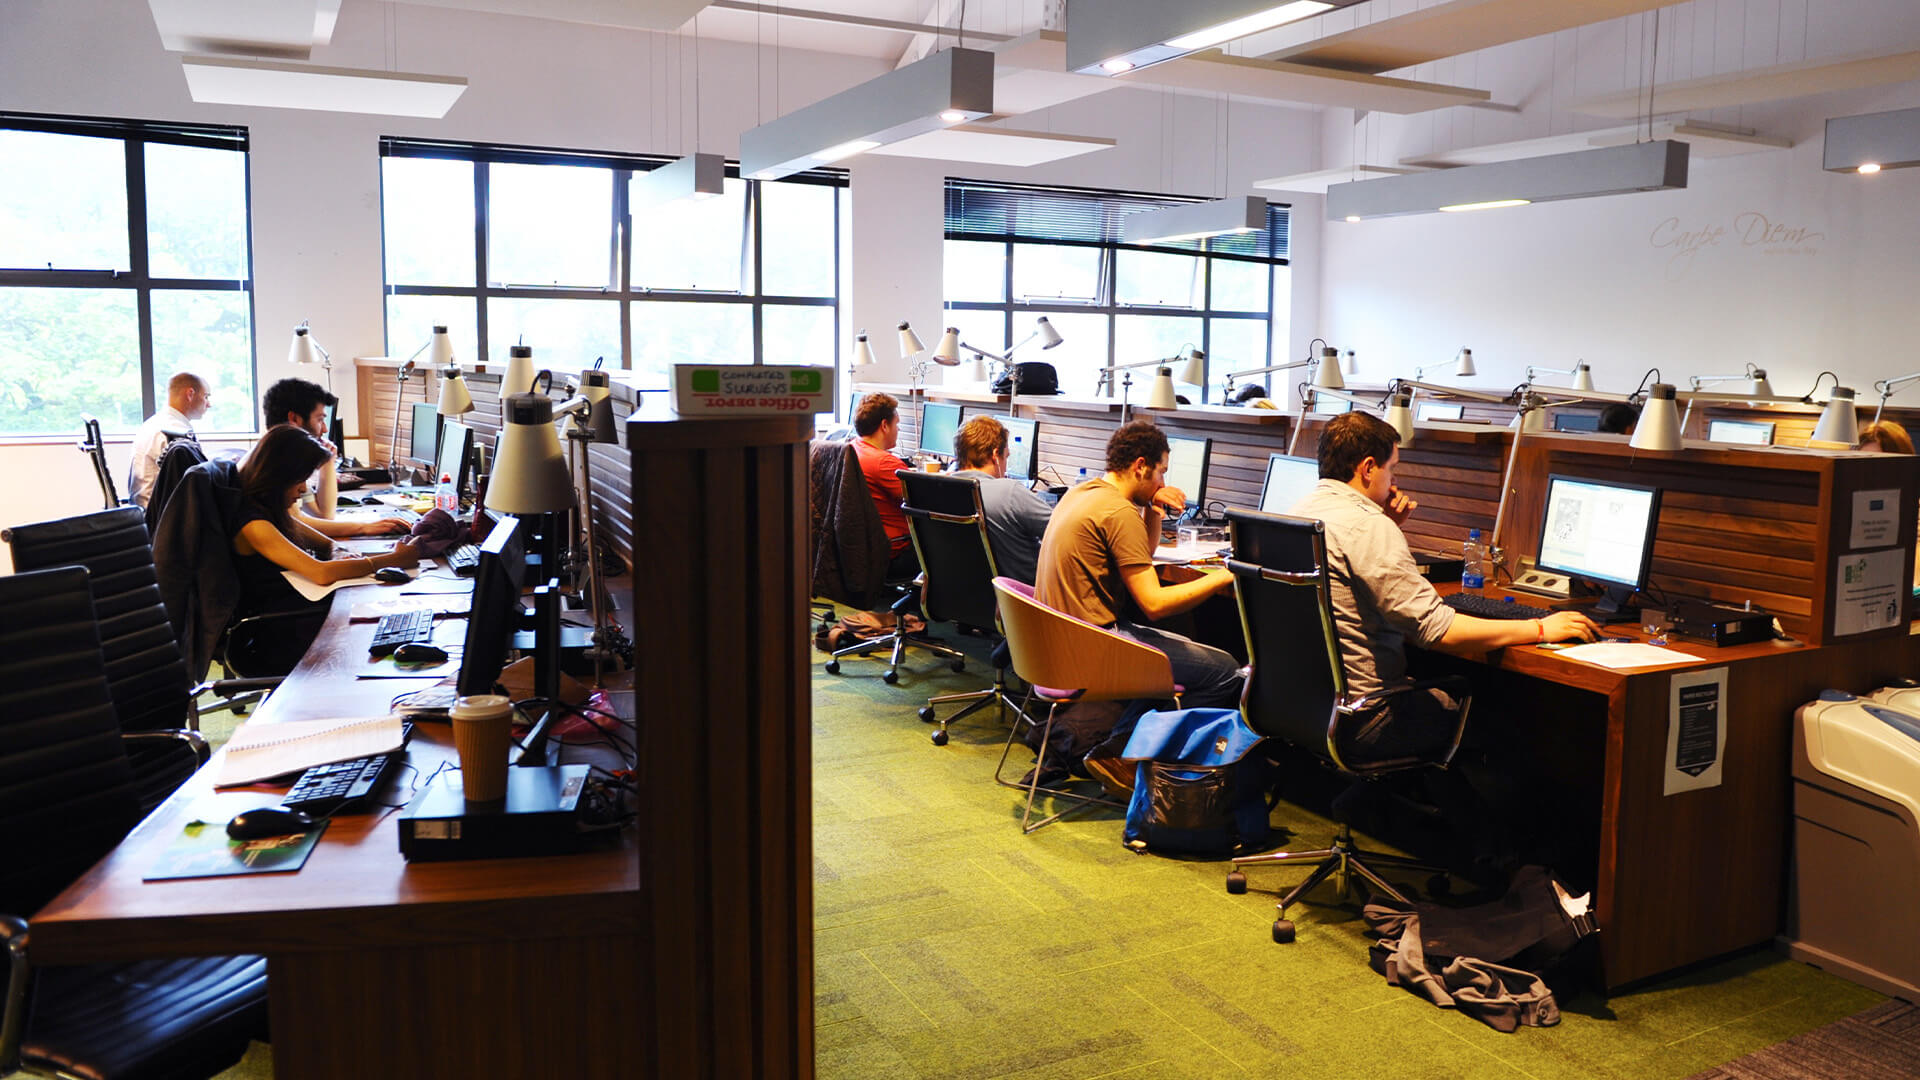 On-campus study area with computers at Queen's University Belfast